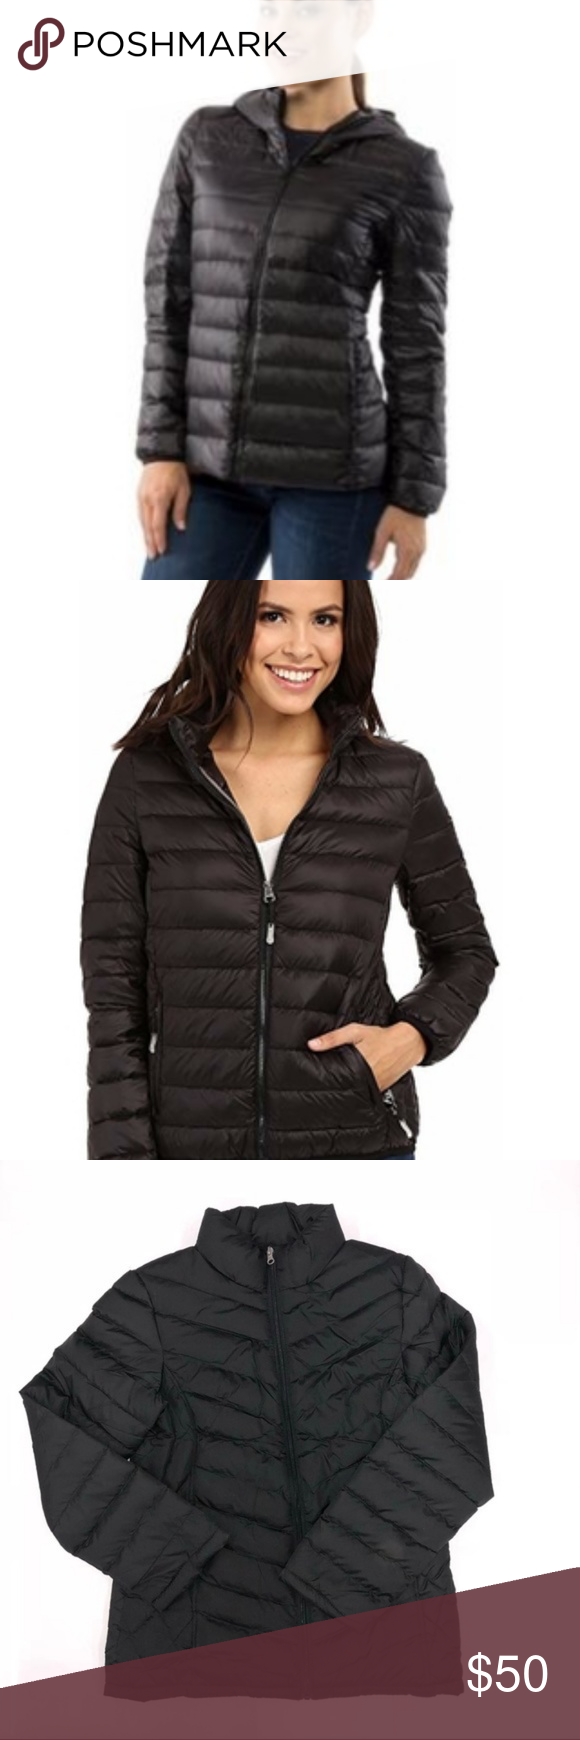 Just In Packable Travel Puffer Jacket Packable Travel Puffer Jacket Jacket Is Made From Thin Warm Ultra Light Down Ma Jackets Clothes Design Puffer Jackets [ 1740 x 580 Pixel ]